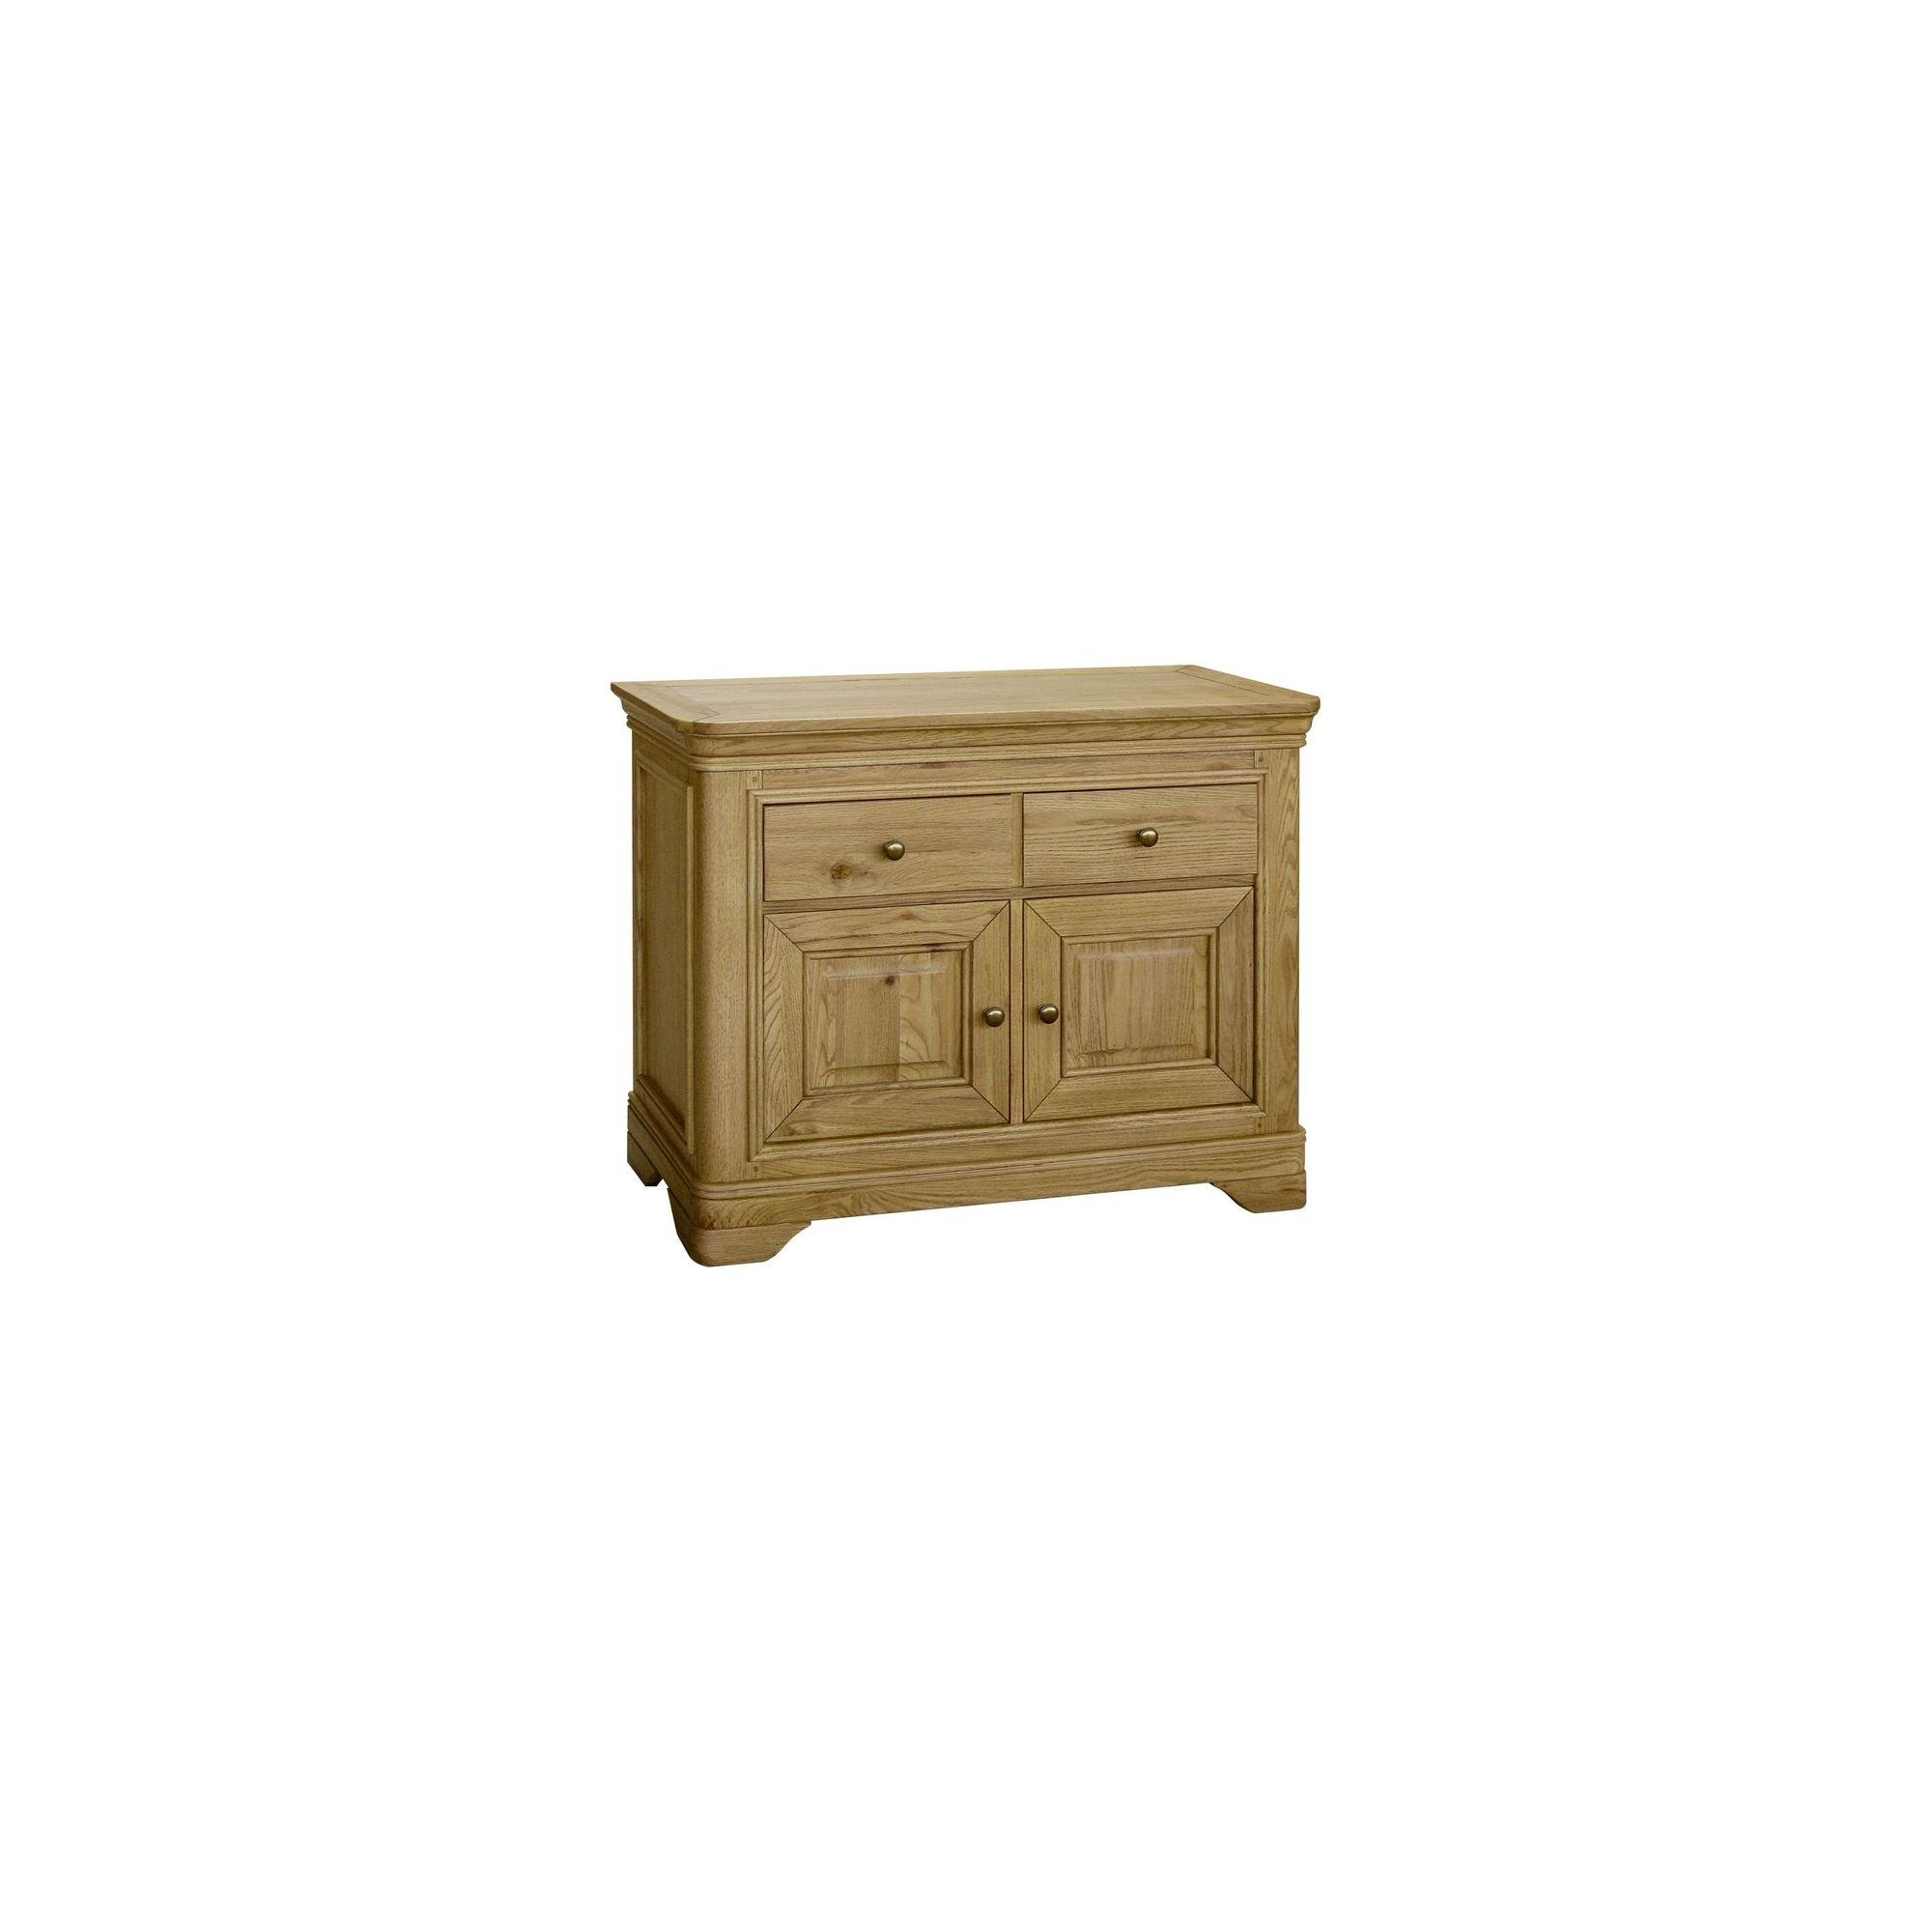 Kelburn Furniture Loire Small Sideboard in Light Oak Stain and Satin Lacquer at Tesco Direct